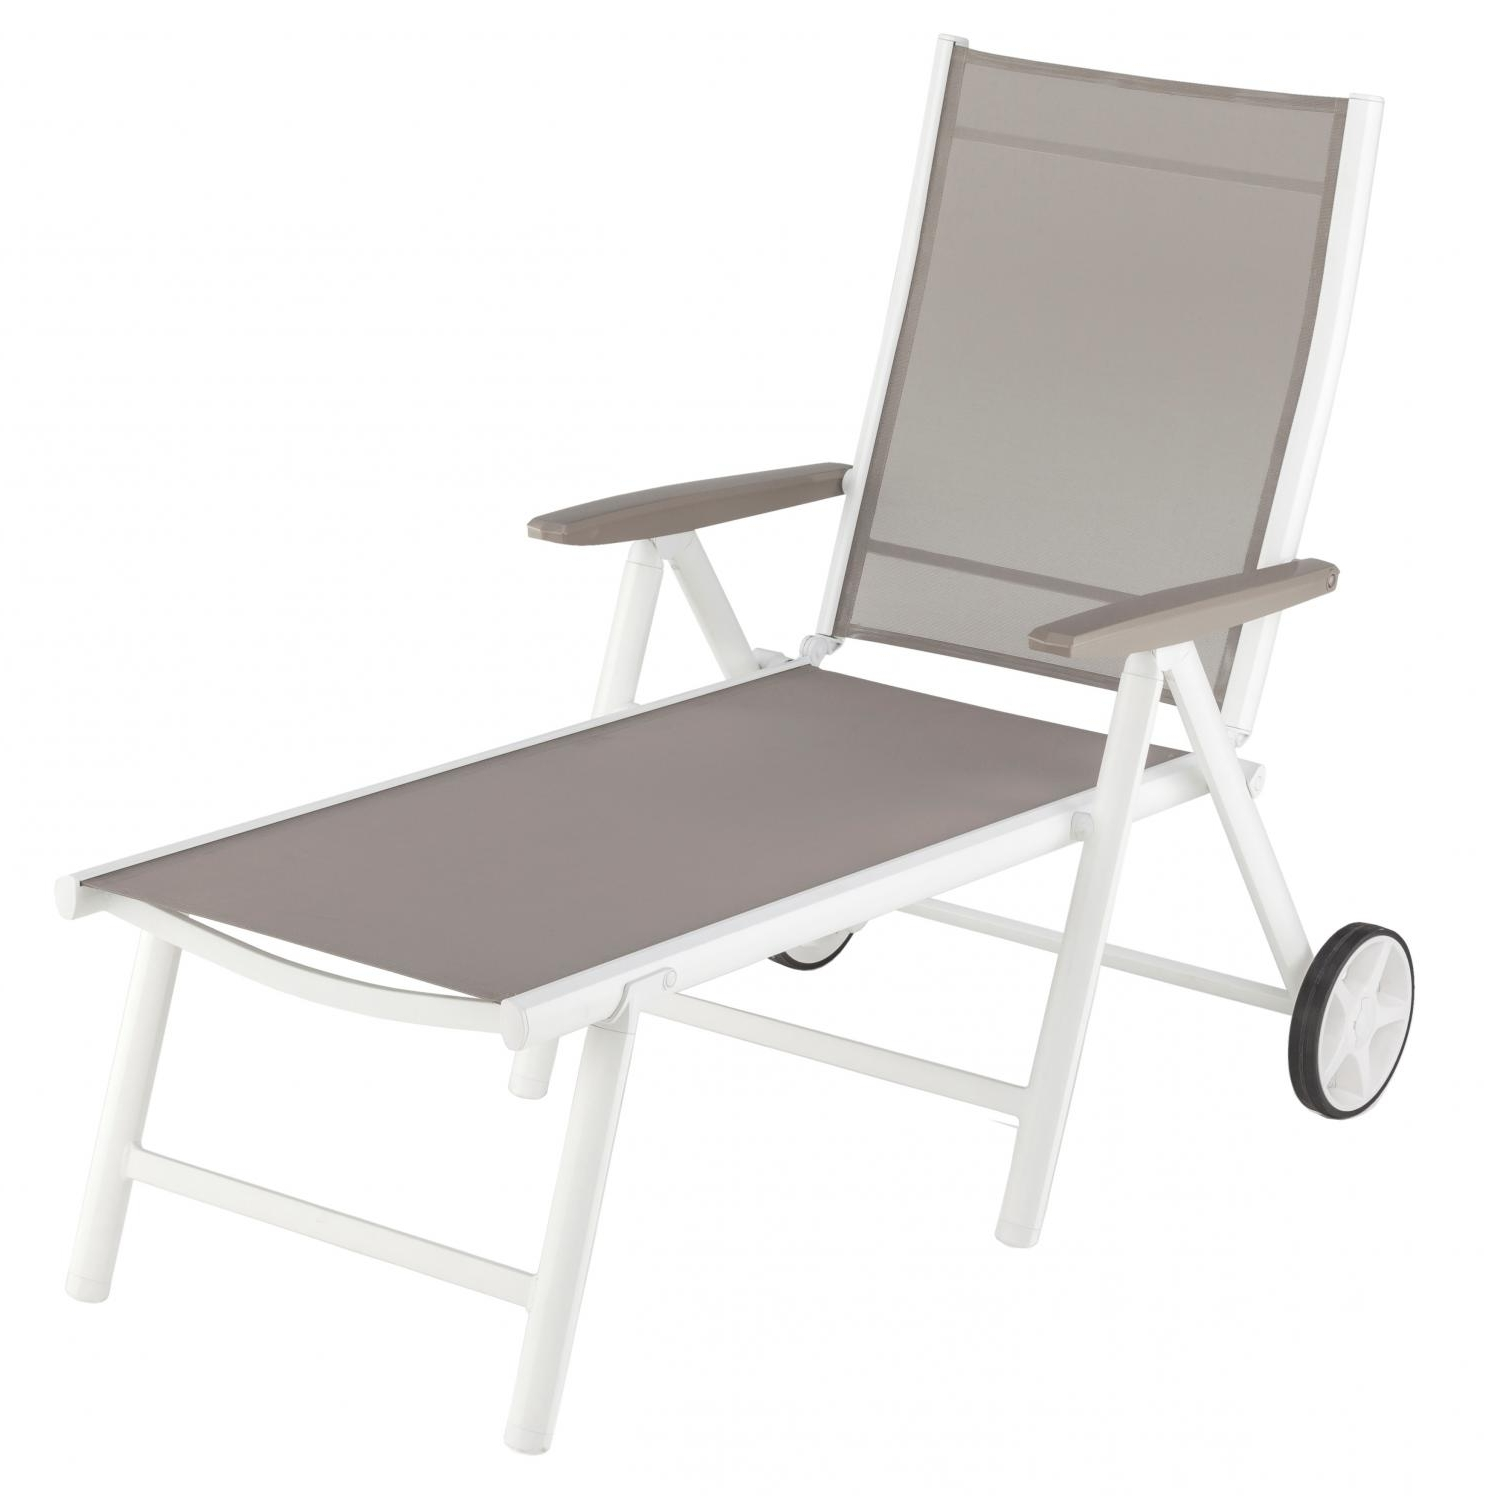 Widely Used Kettler Vista Aluminum Patio Chaise Lounge – Gray : Ultimate Patio Regarding Kettler Chaise Lounge Chairs (View 6 of 15)